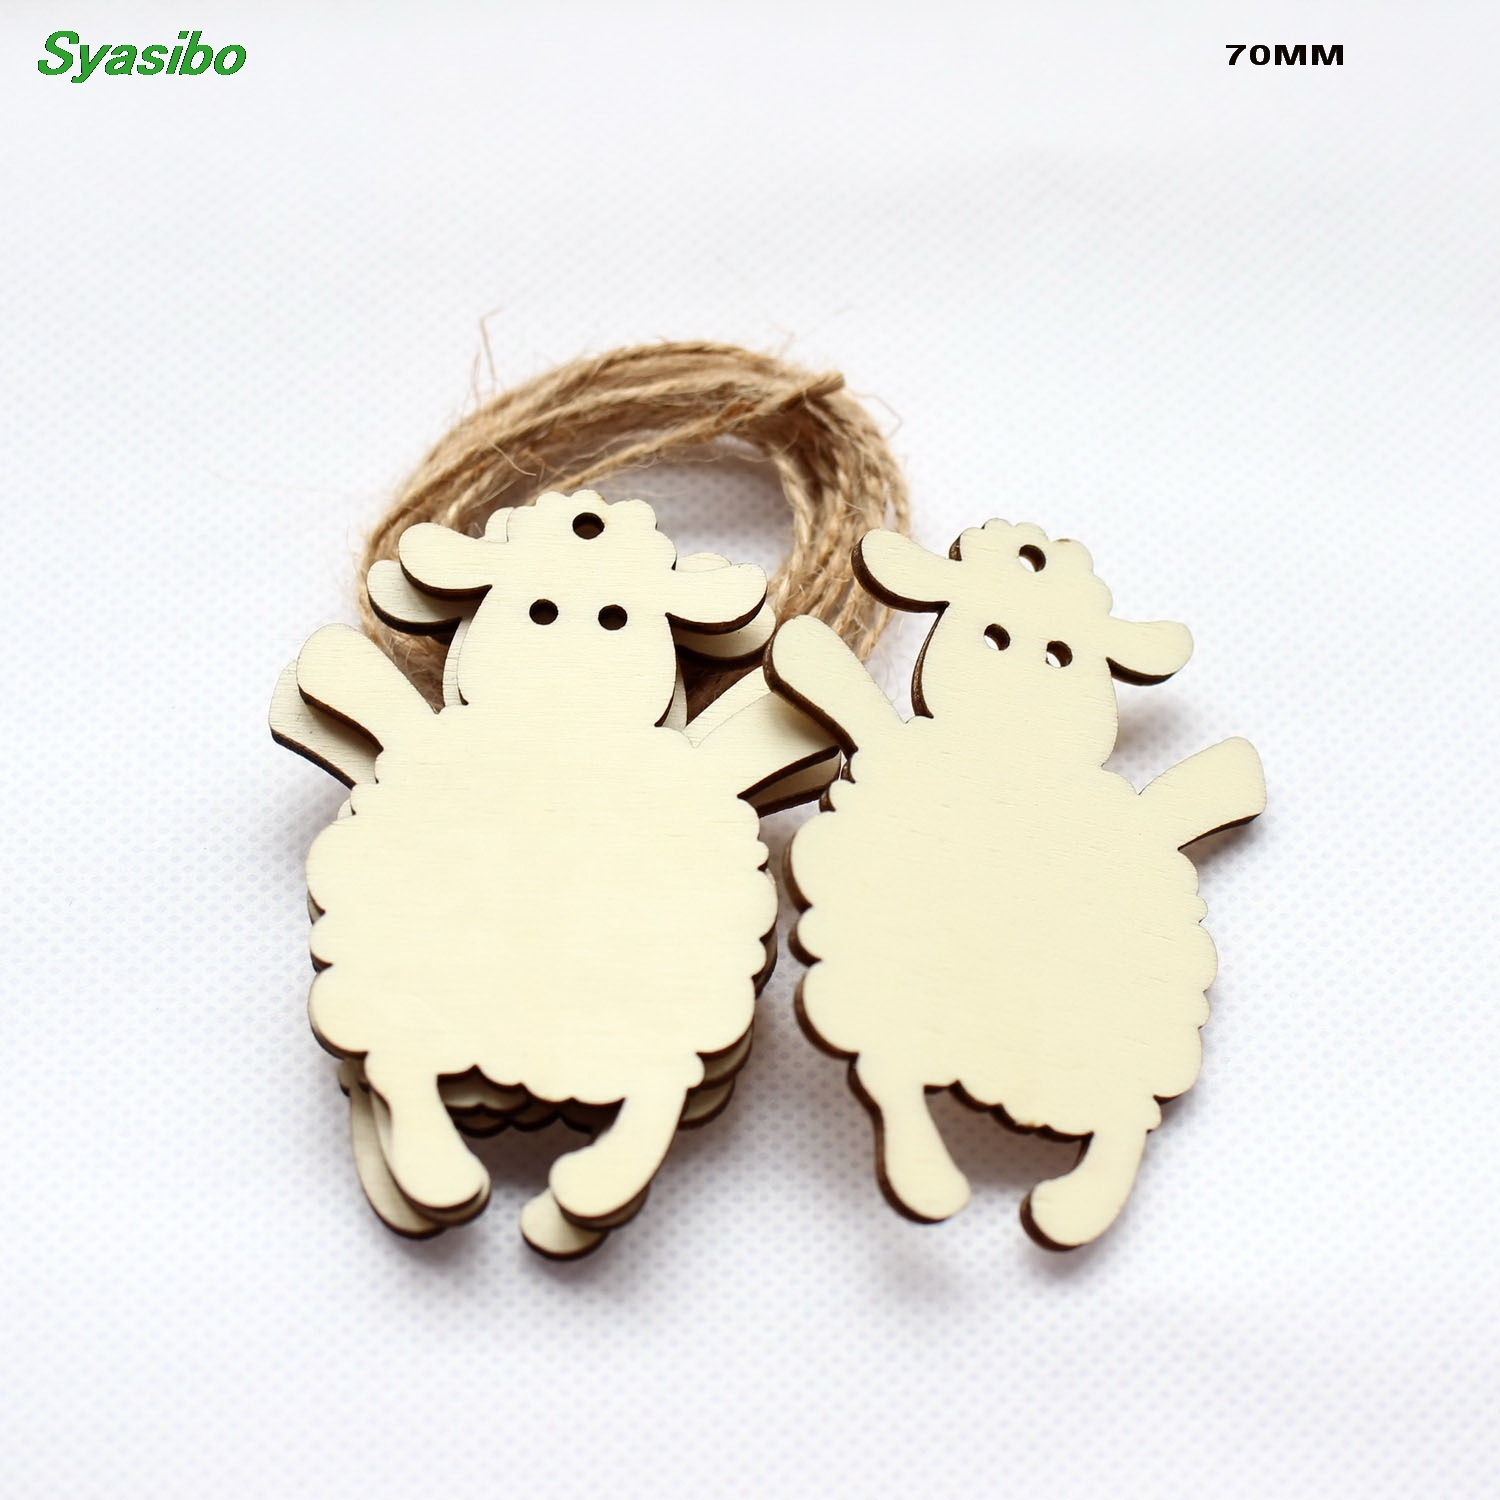 (10pcs/lot) 70mm Natural Blank Wooden Sheep Tags Party Oraments Rustic Wood Keychains Supplies Craft 2.8